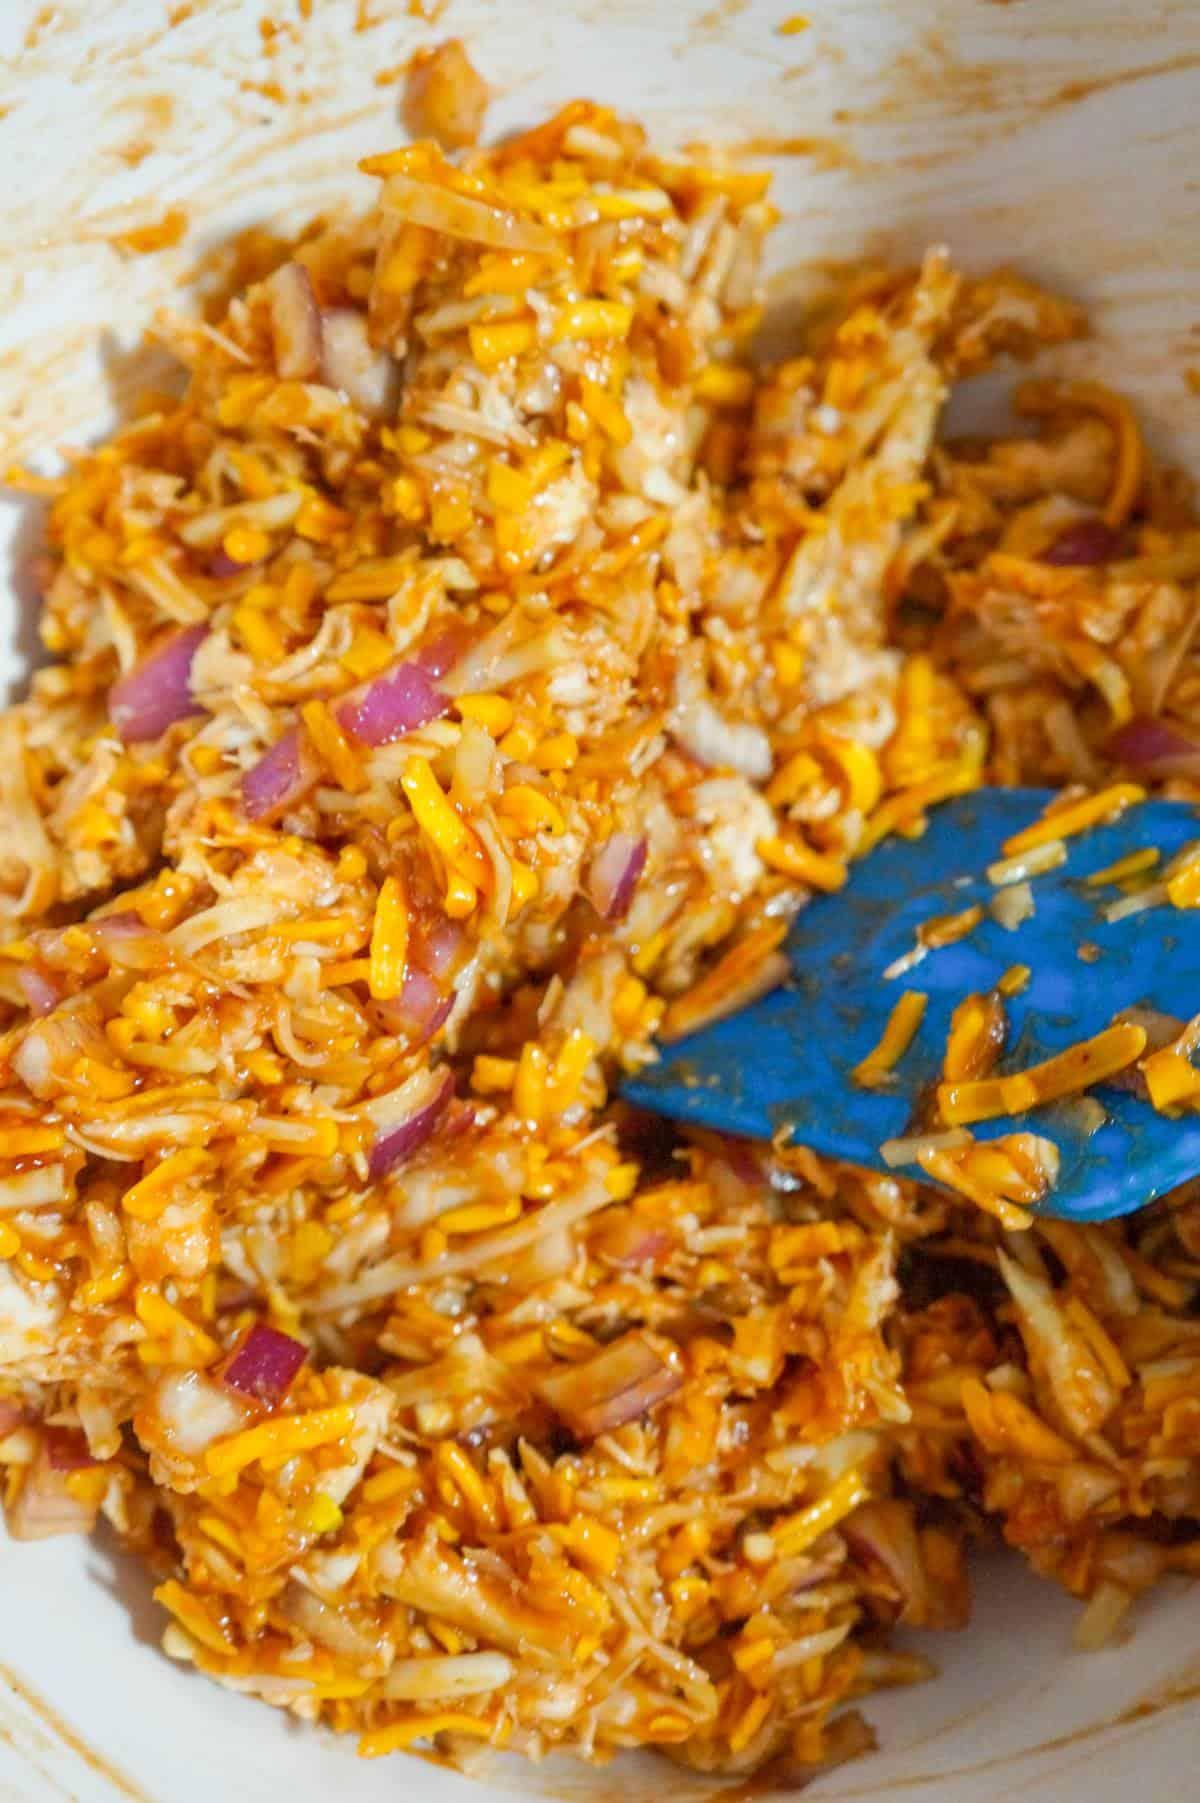 shredded bbq chicken mixture in a mixing bowl